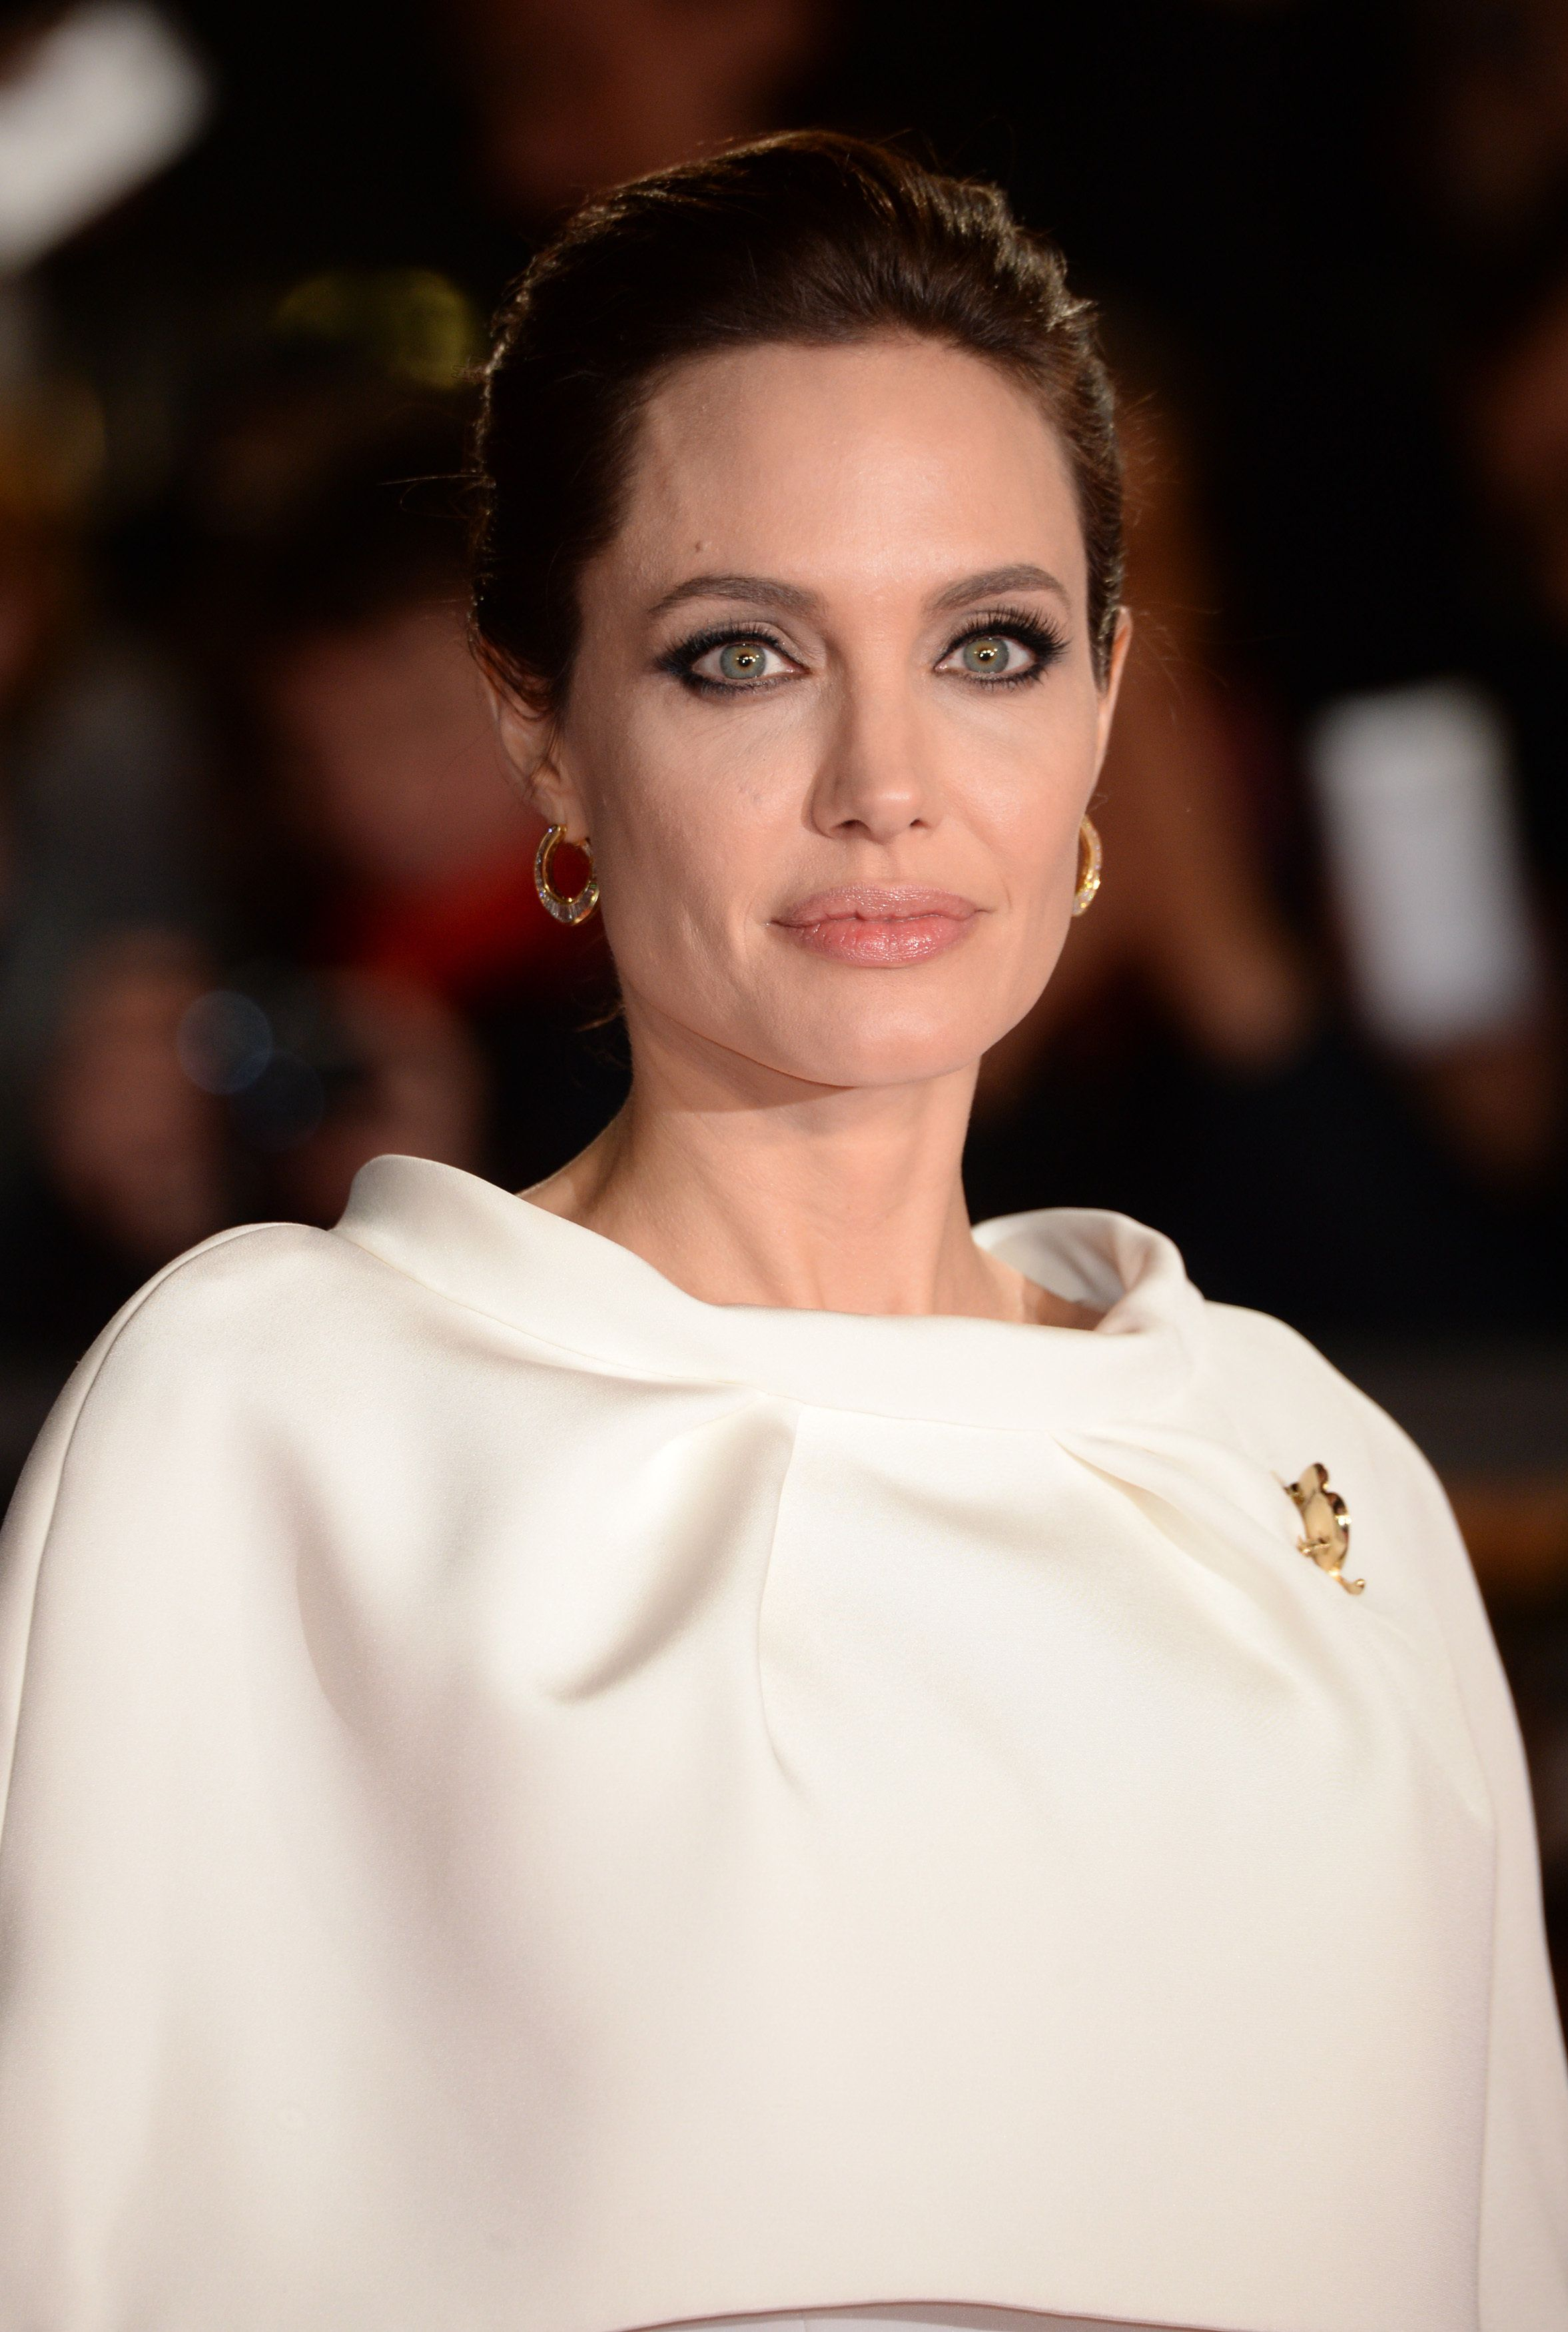 Angelina Jolie Opens Up About Brad Pitt Divorce In Most Candid Interview Since Split